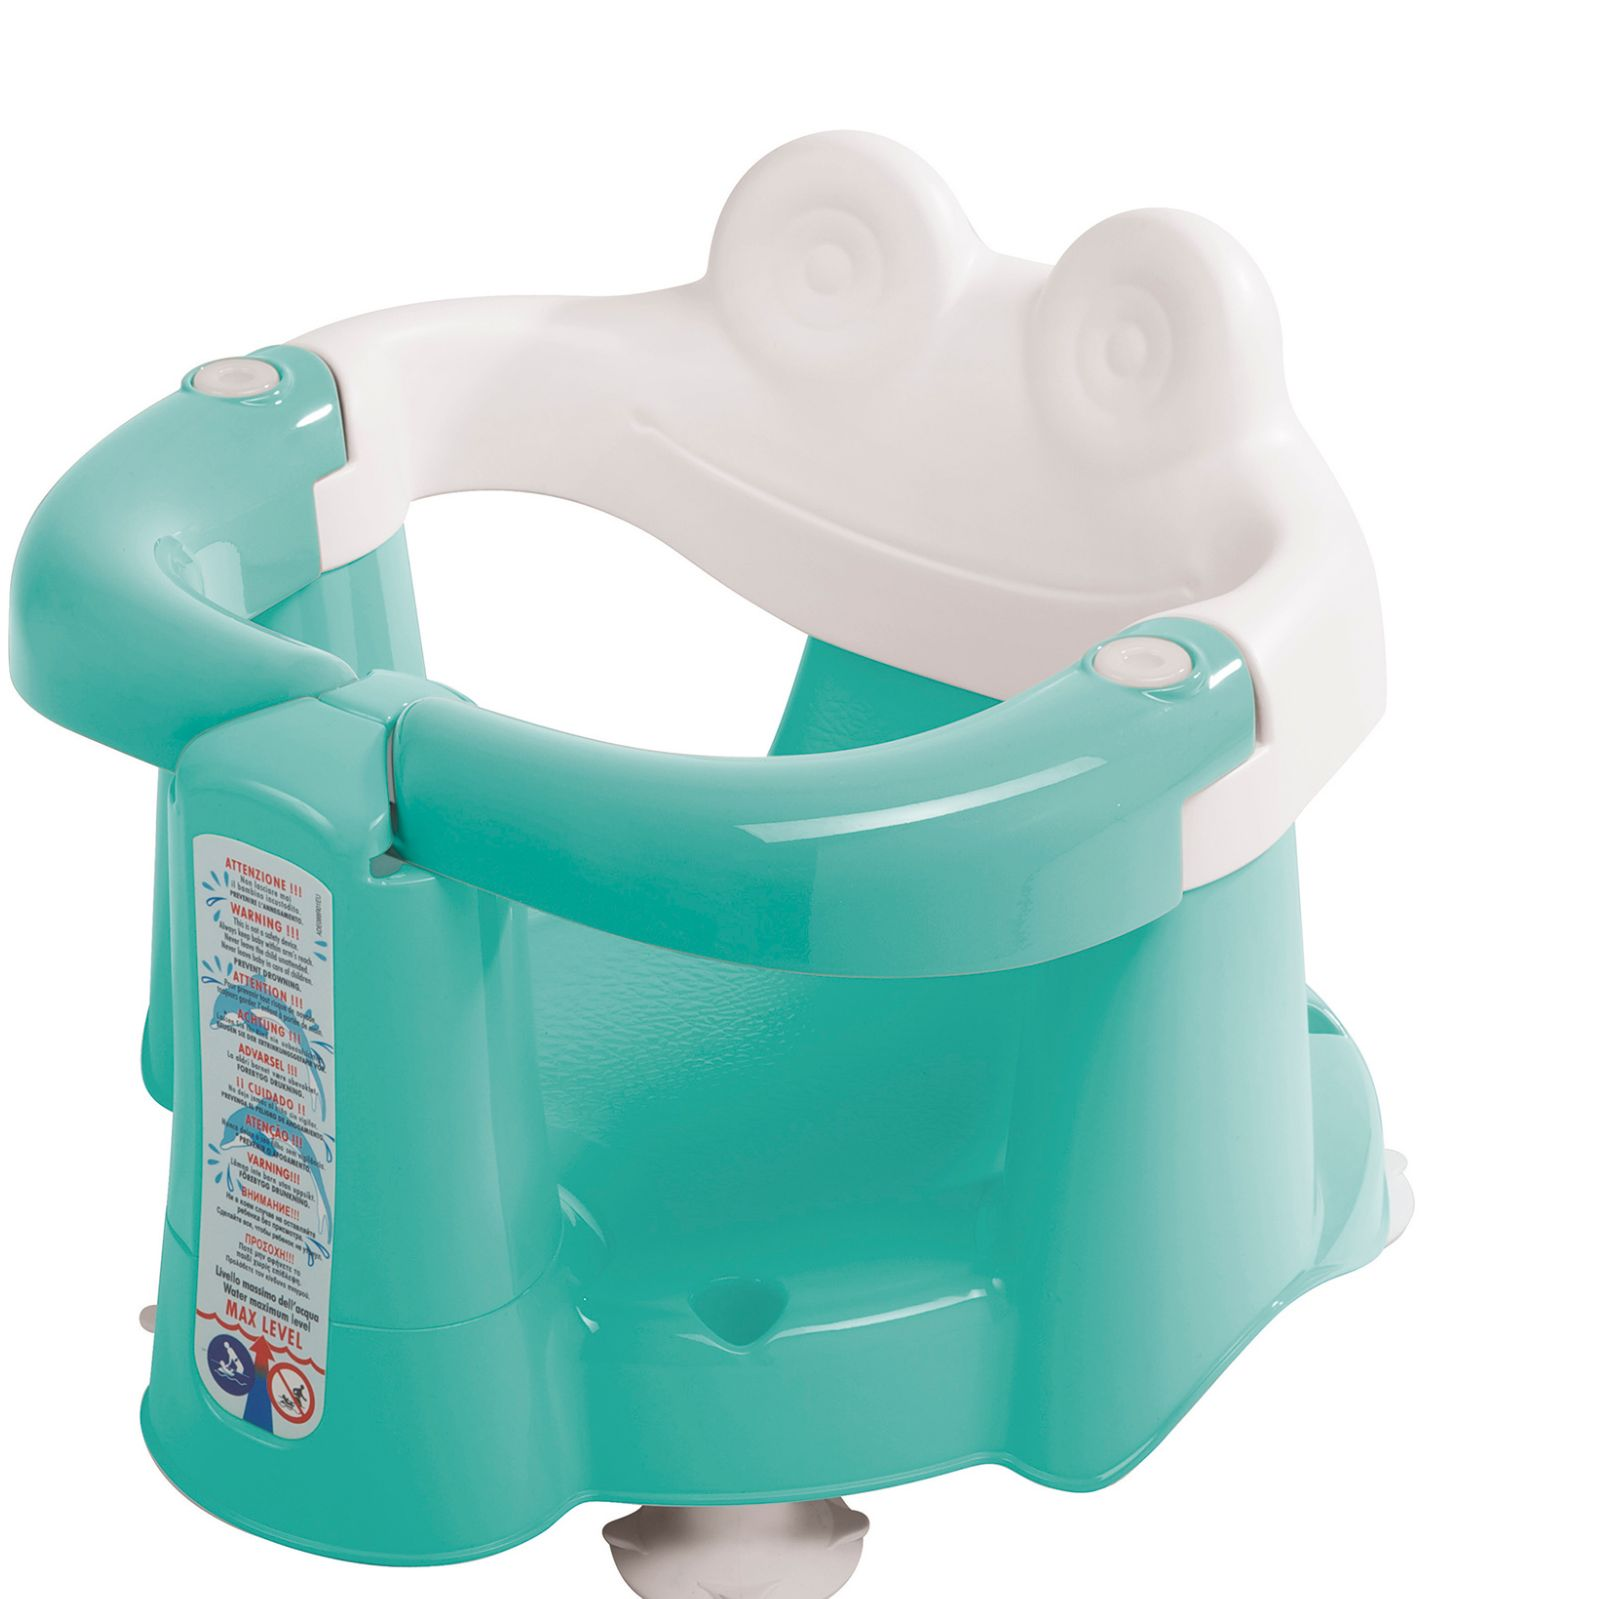 OK Baby Crab Opening Bath Seat - Aqua | Buy at Online4baby